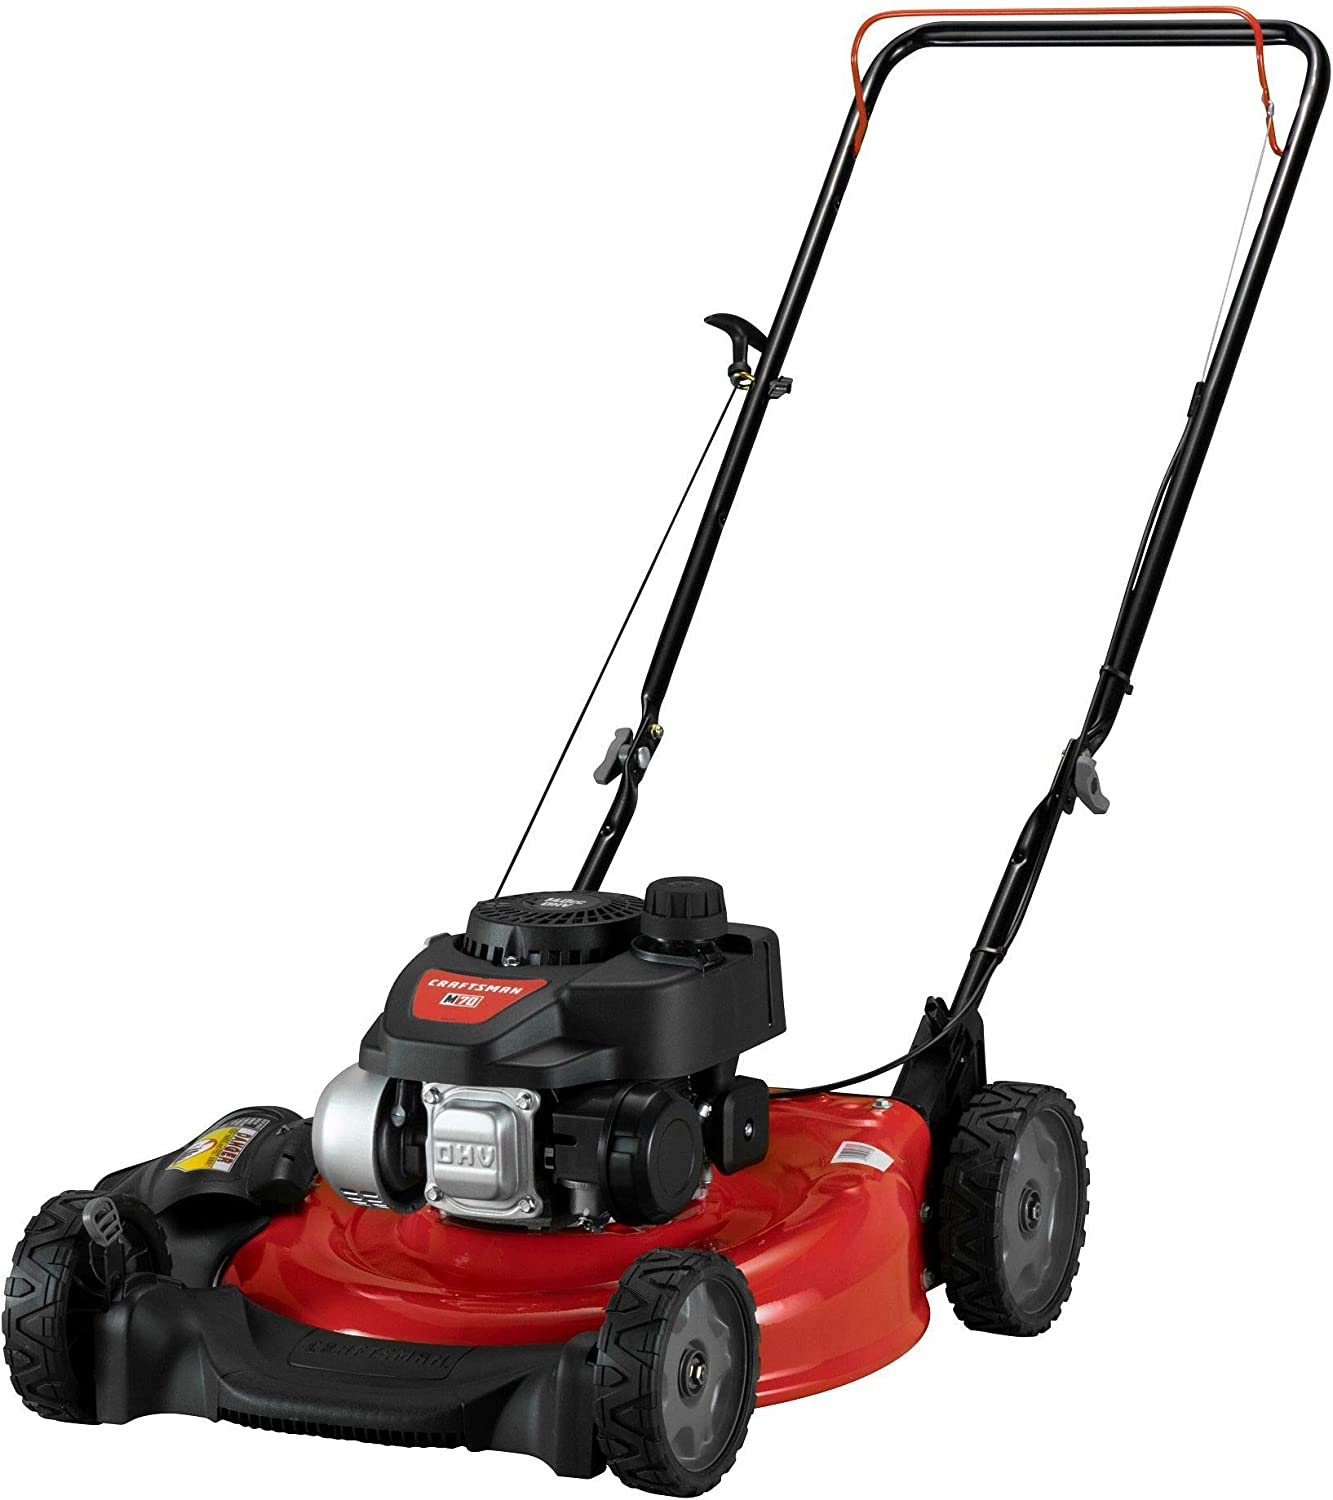 Craftsman 11P-A0SD791 21 in. 140cc OHV Engine Push Mower